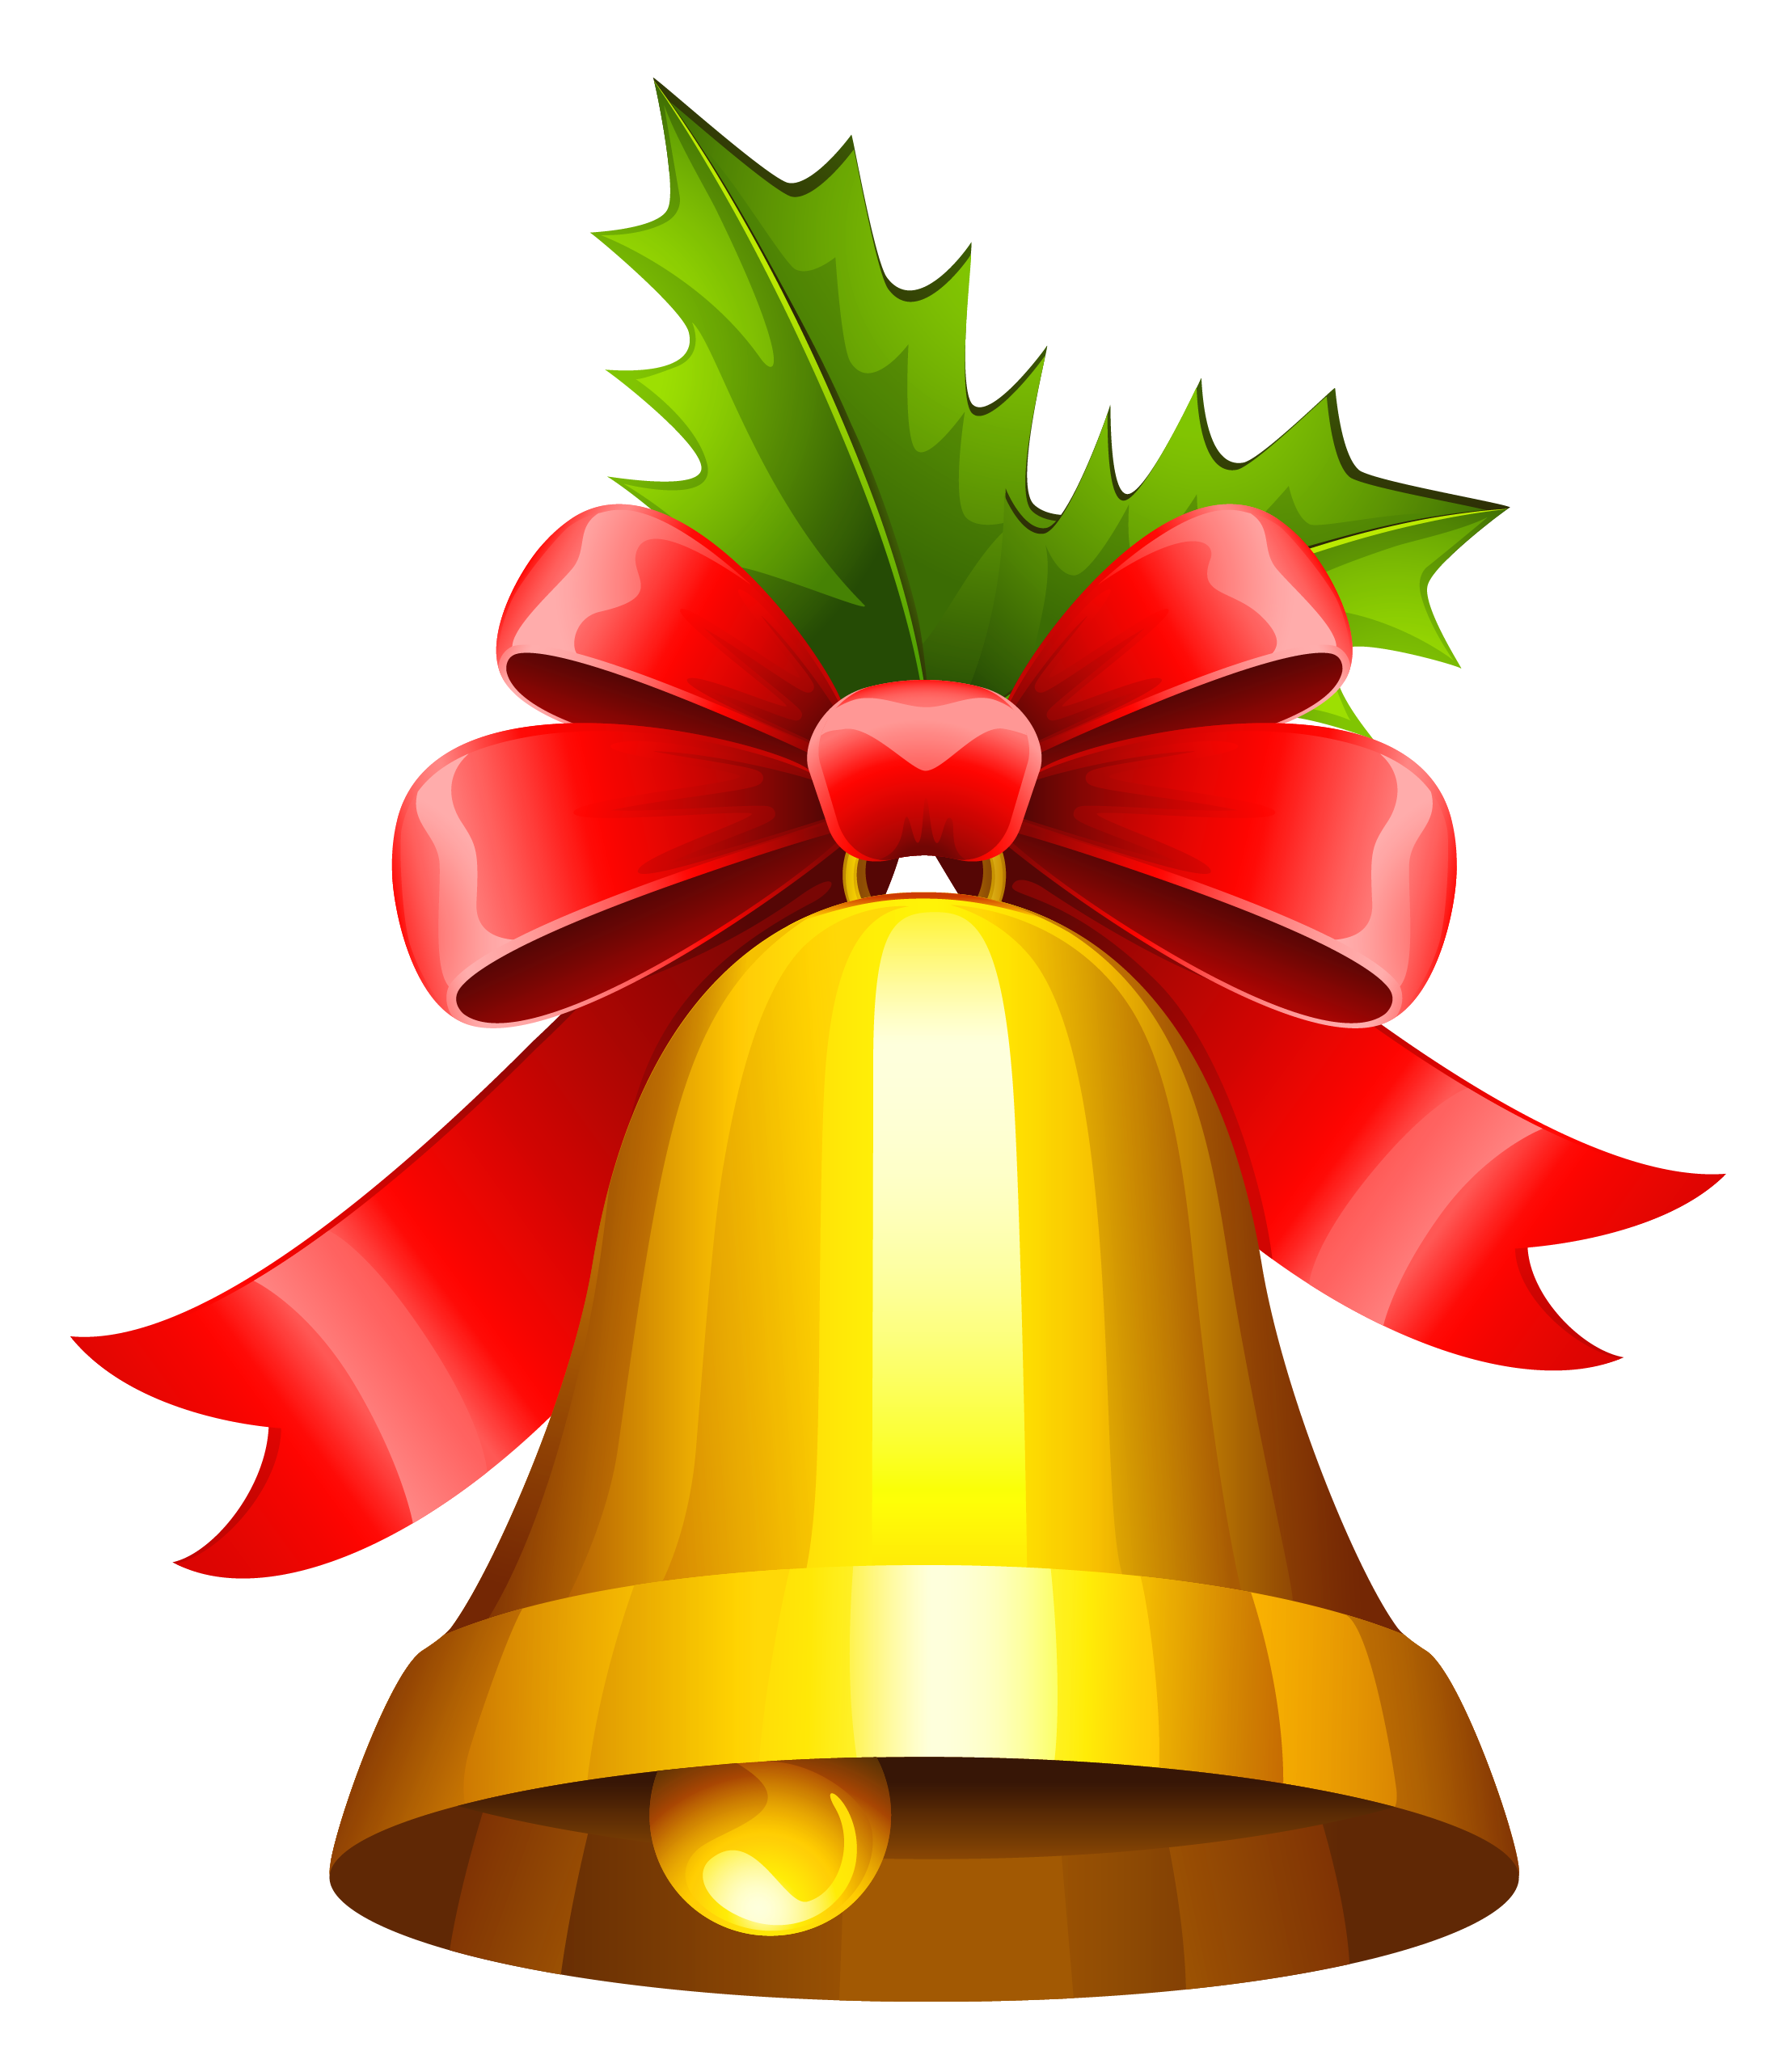 Clipart Christmas Bells 20 Free Cliparts